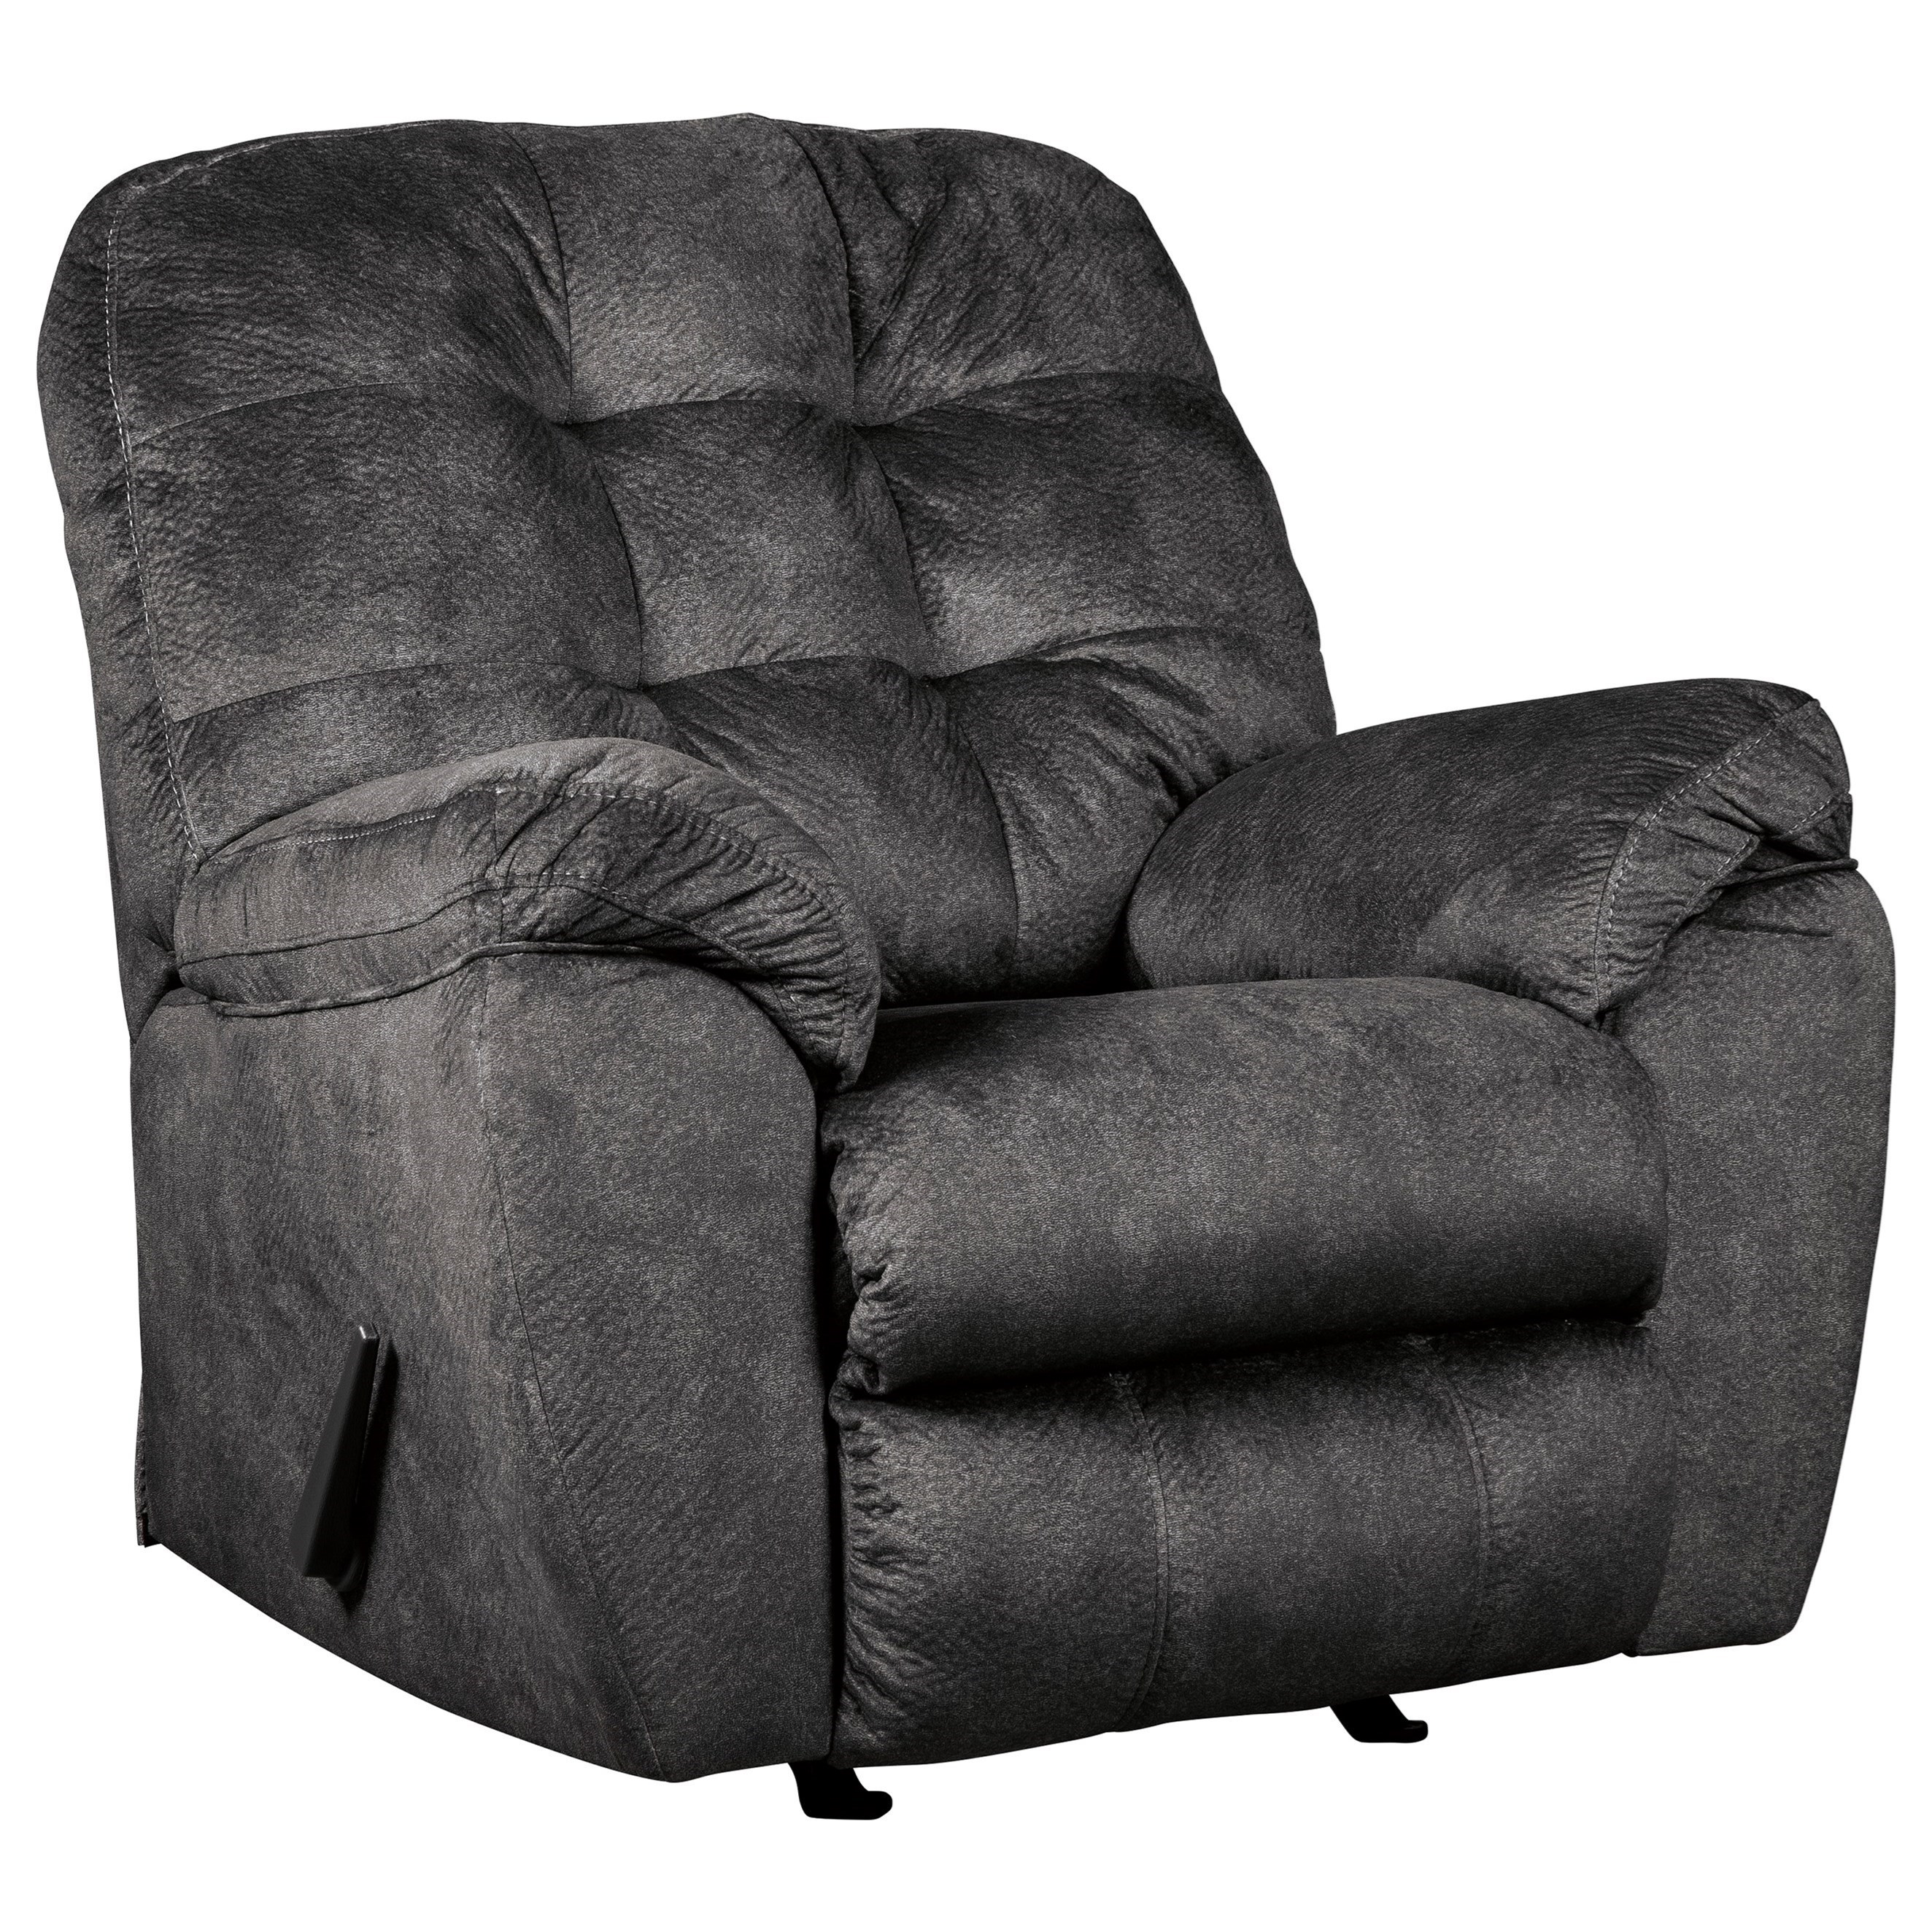 Recliner Pillow Accrington Casual Contemporary Rocker Recliner By Signature Design By Ashley At Northeast Factory Direct